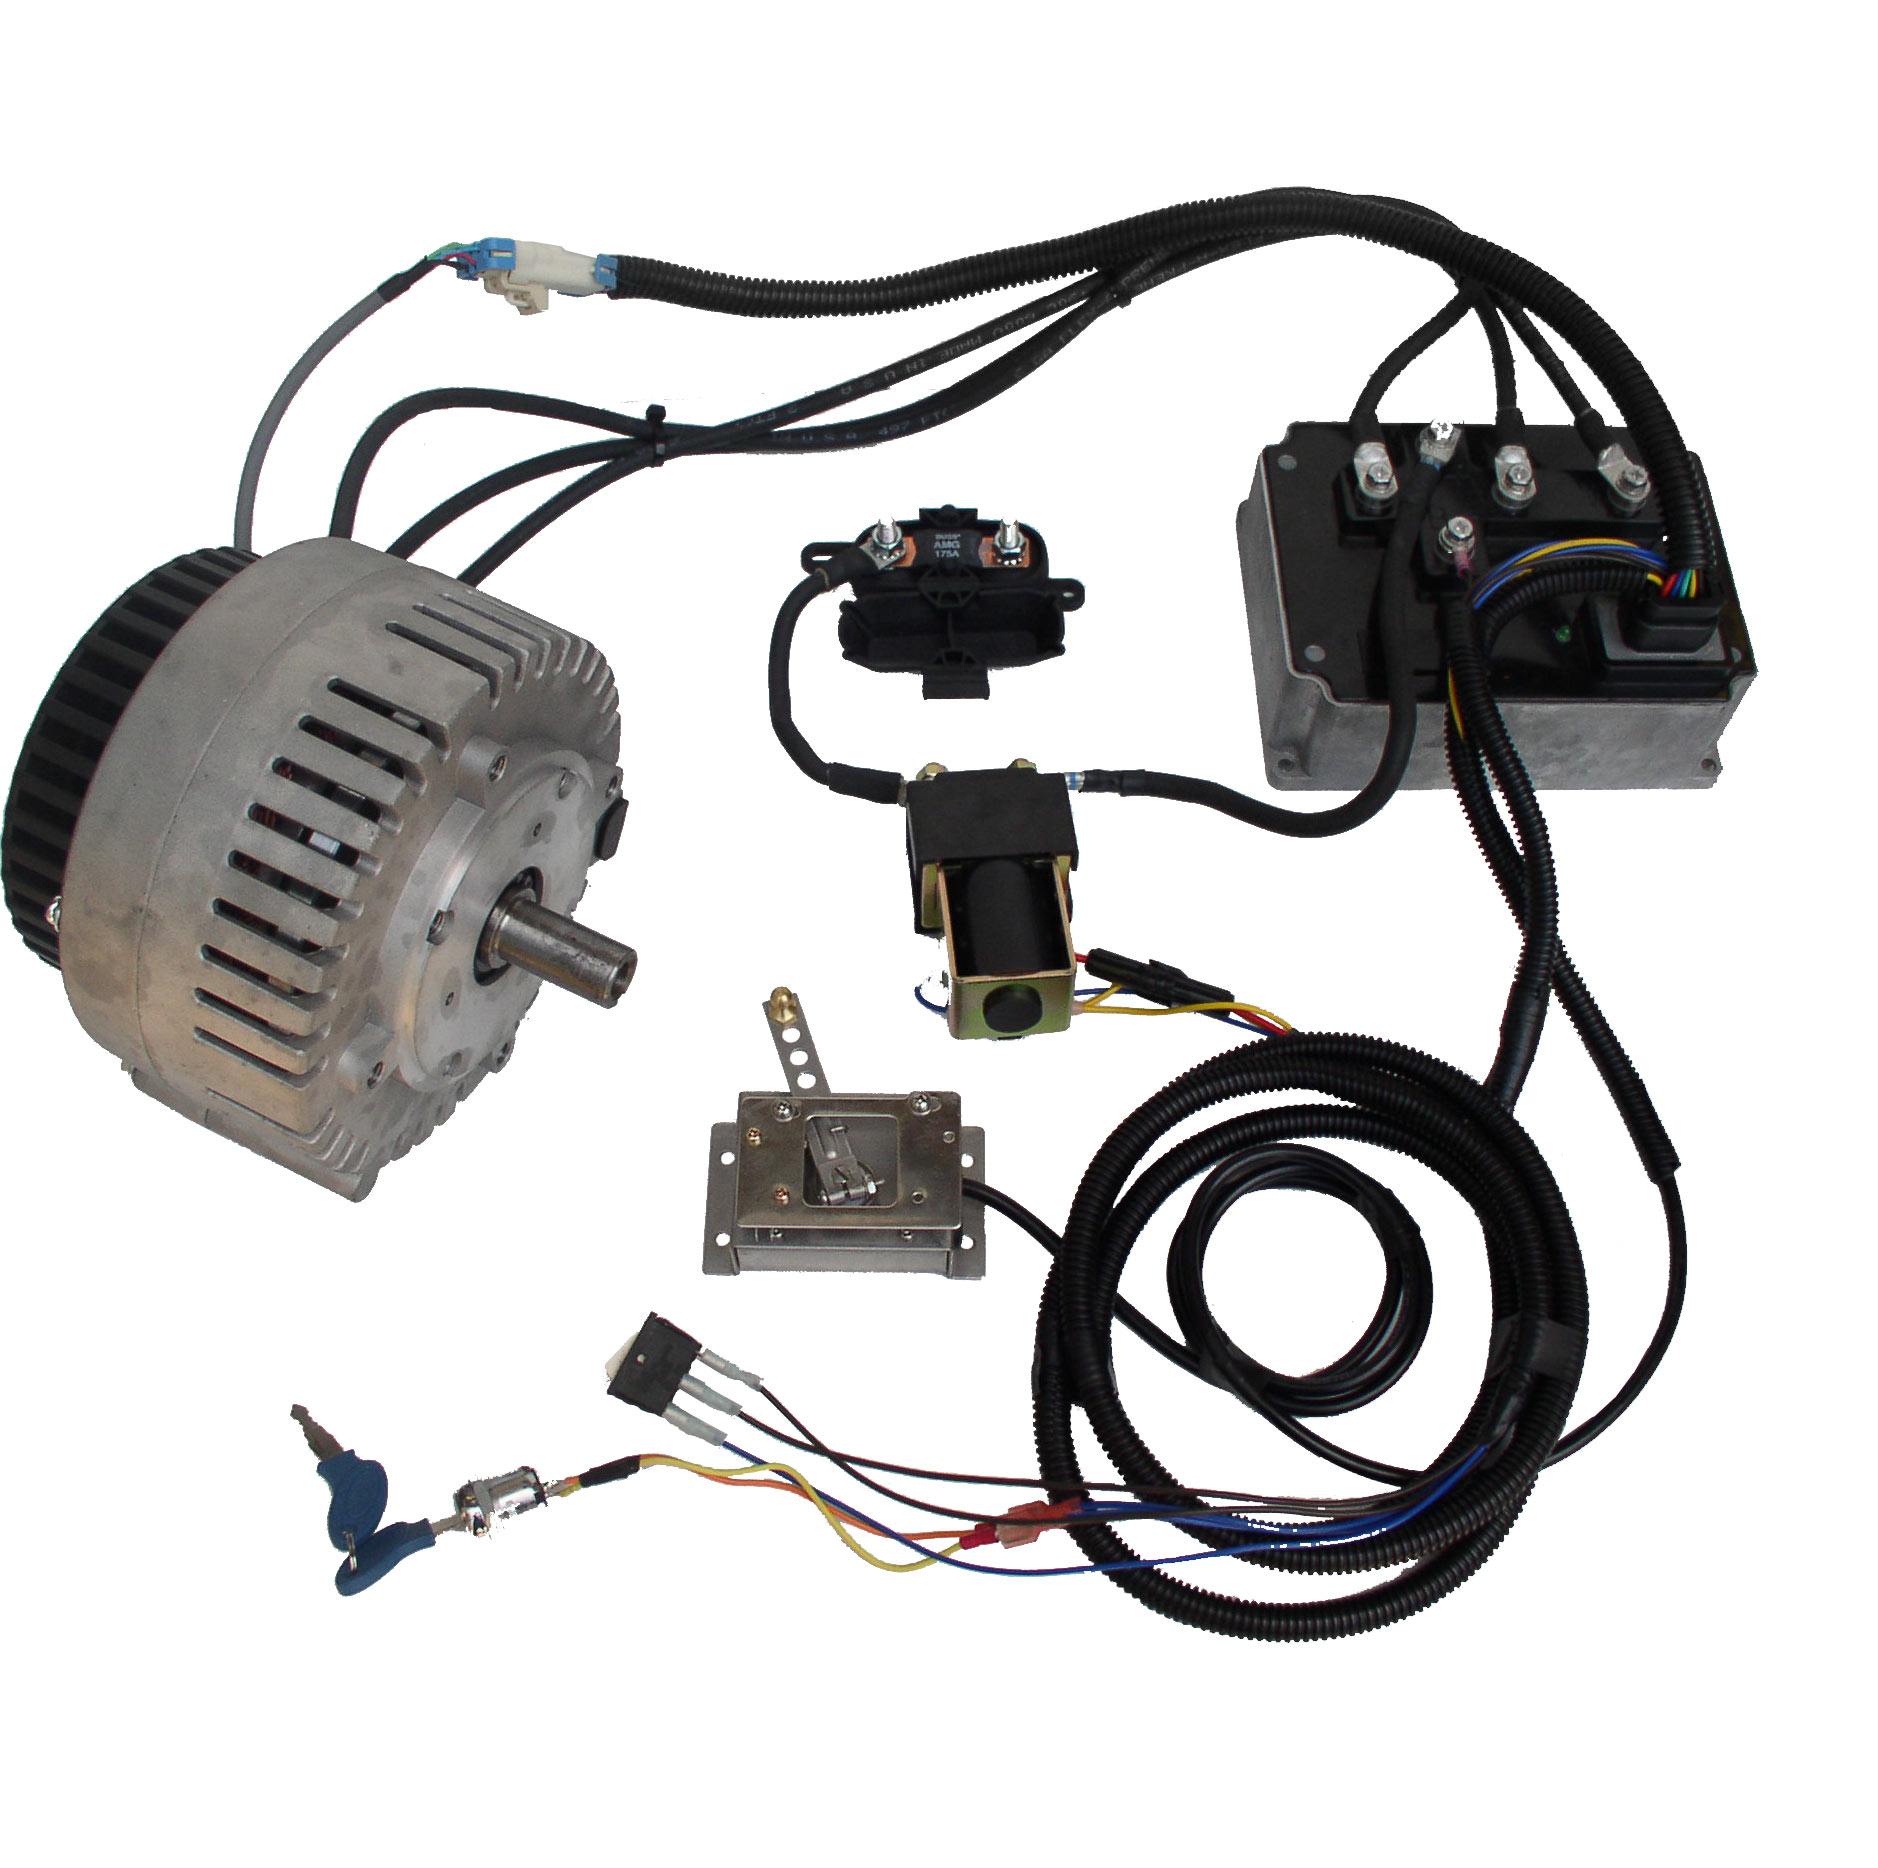 Mars Brushless Pmac Motor With 72v 350a Controller Kit